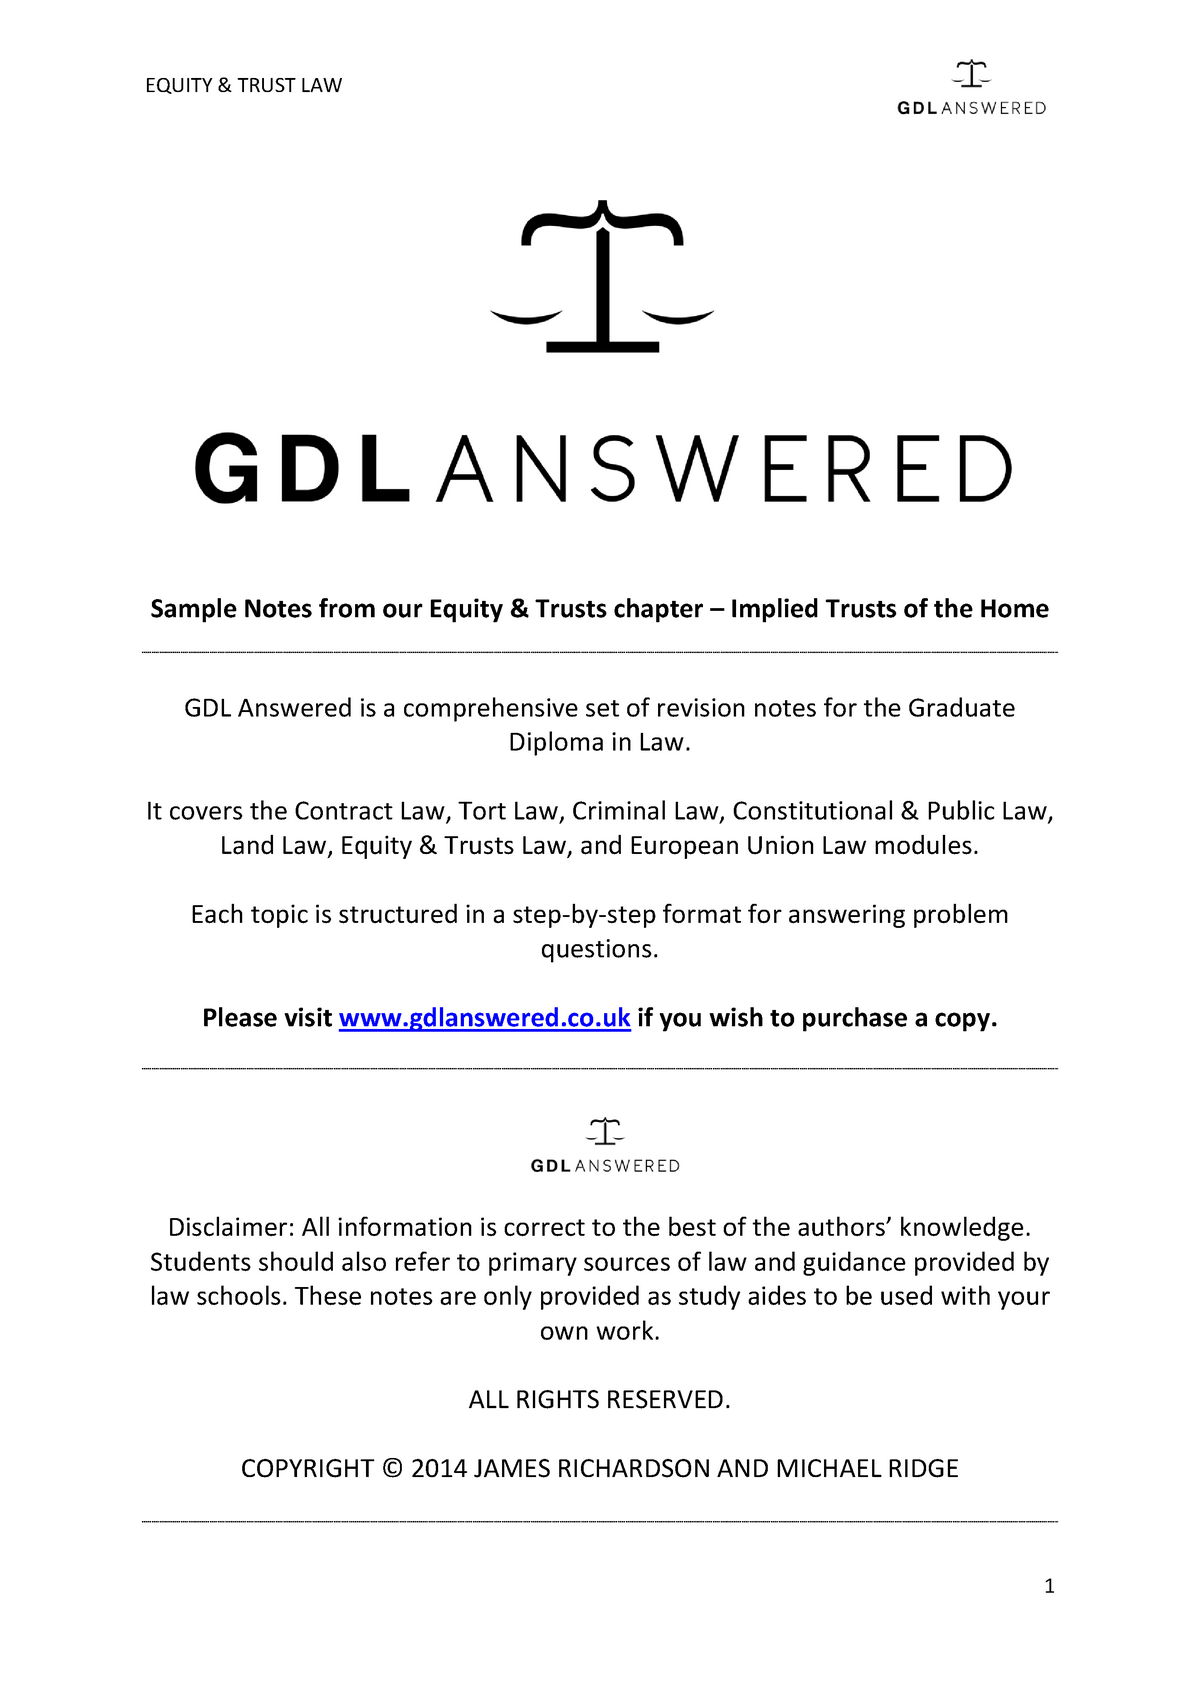 GDL Answered - Implied Trusts of the Home sample chapter